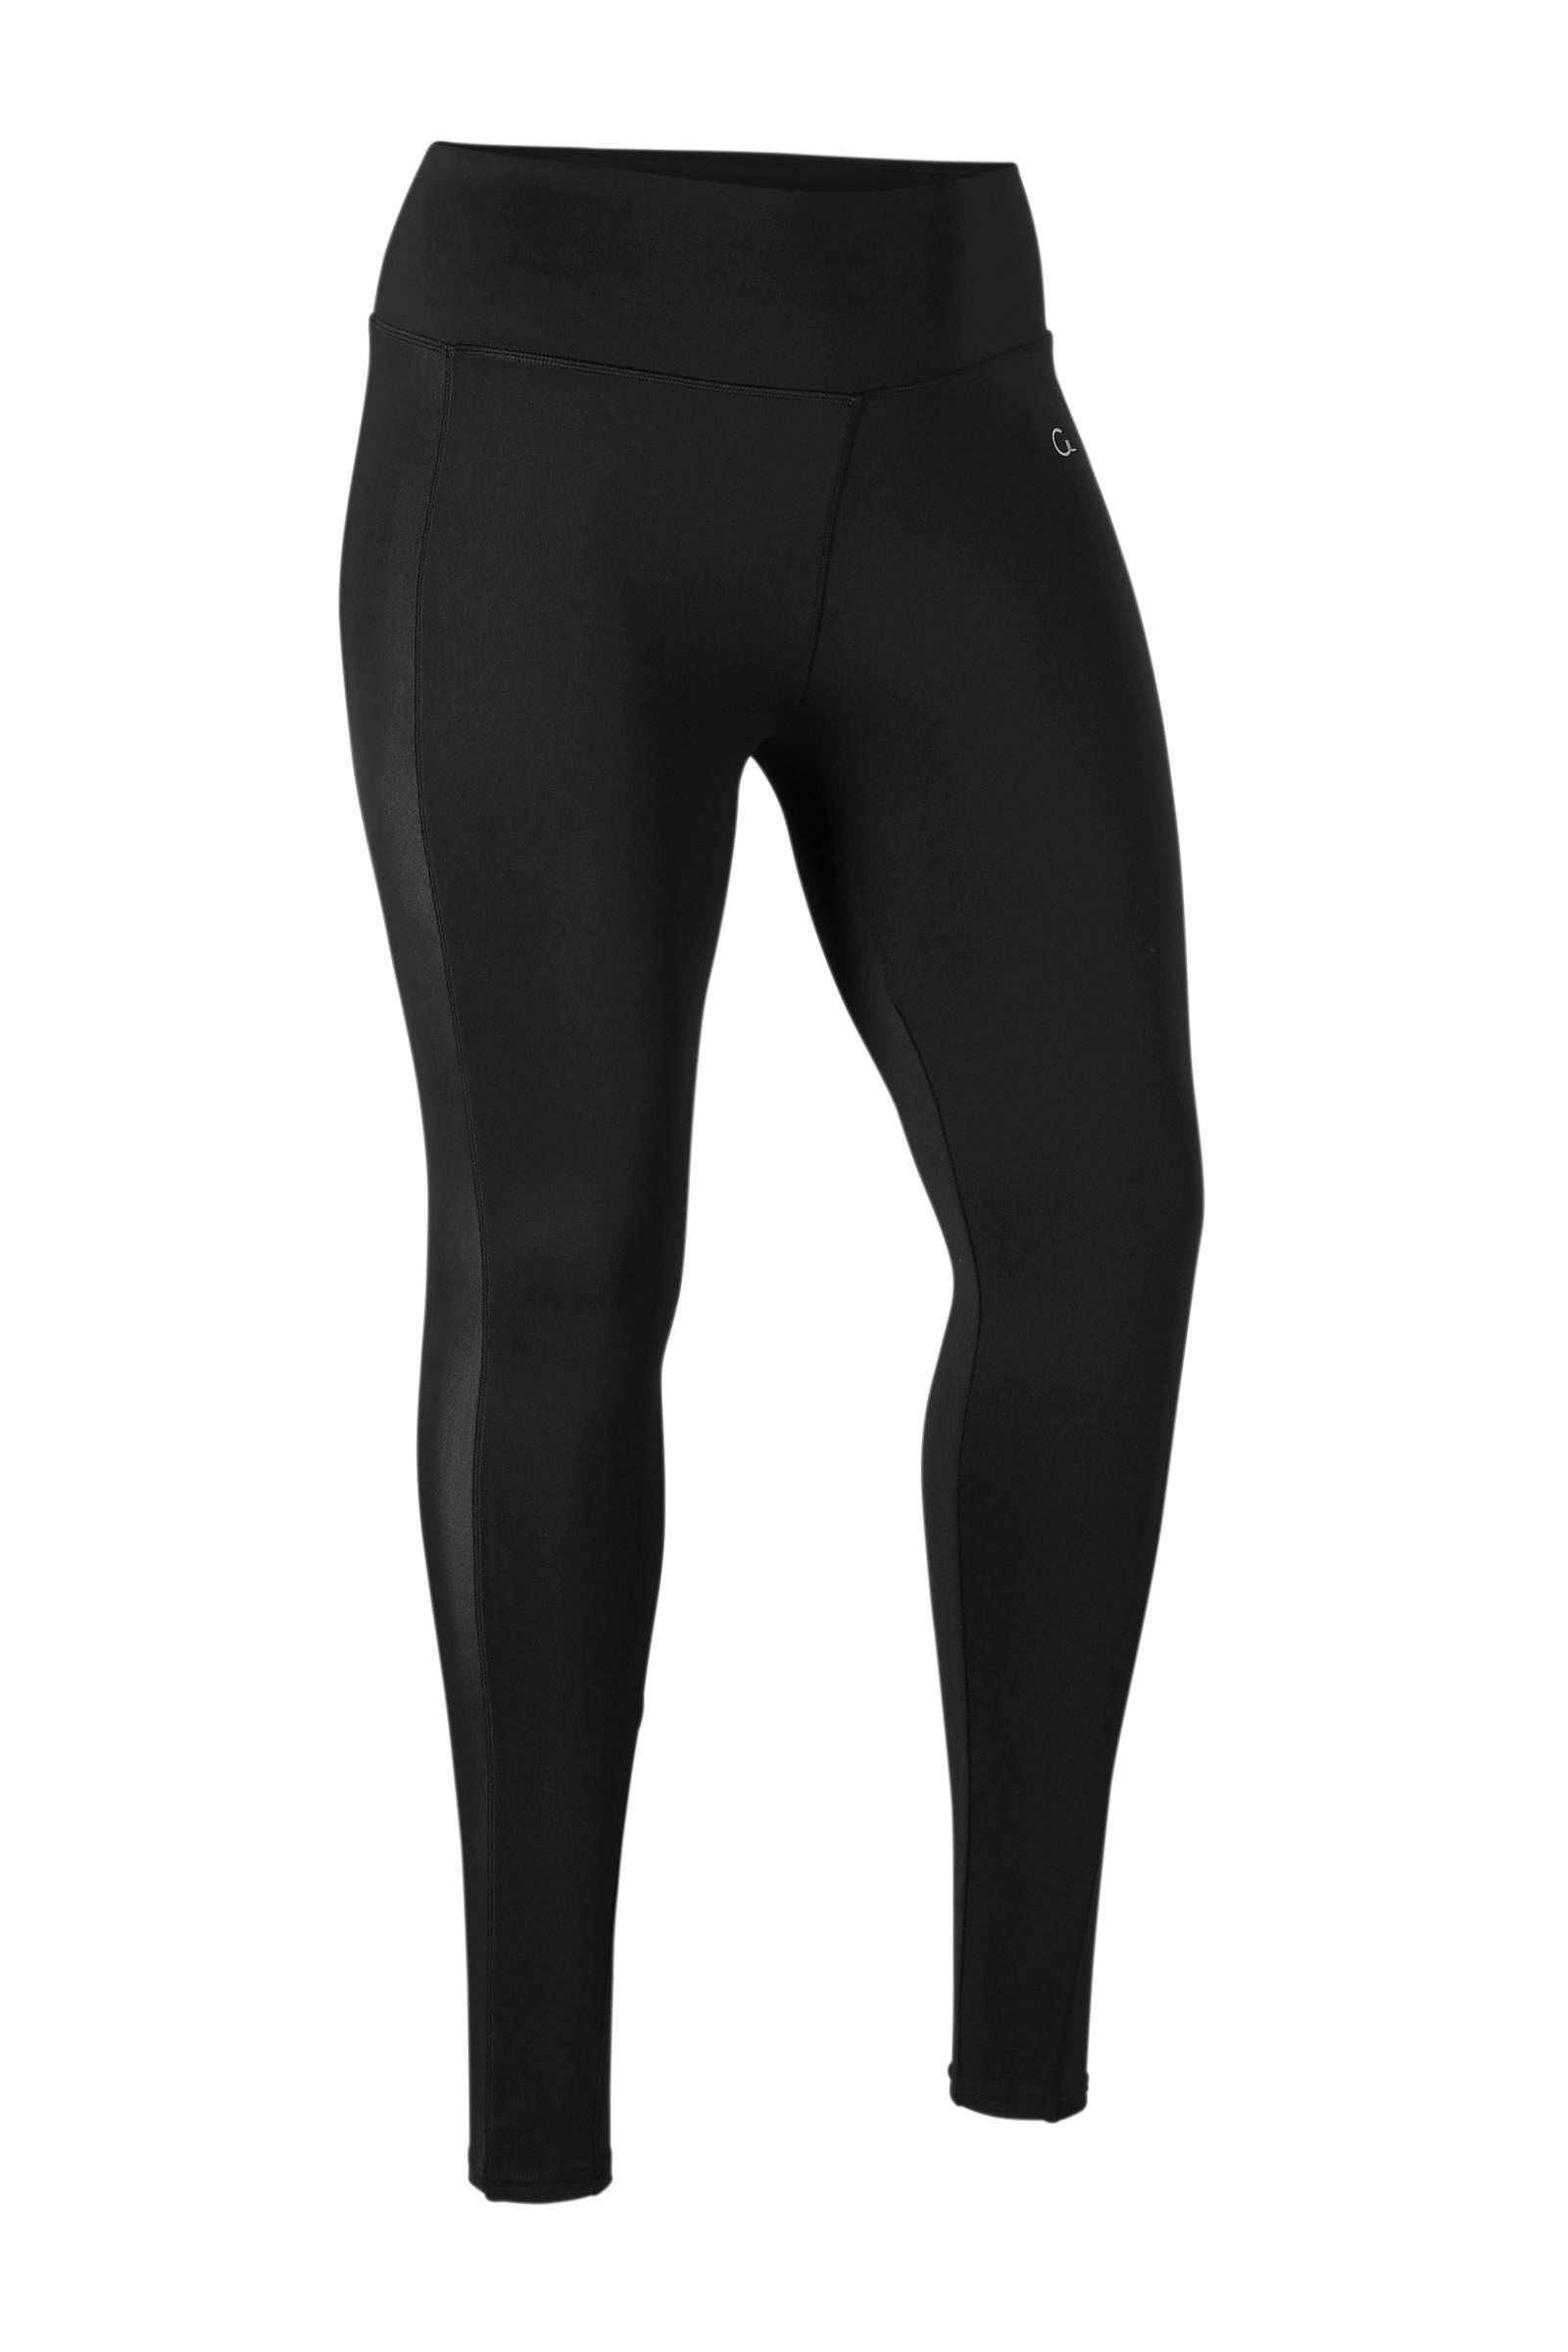 whkmp's great looks sport sport legging met glanzende zijstreep (dames)